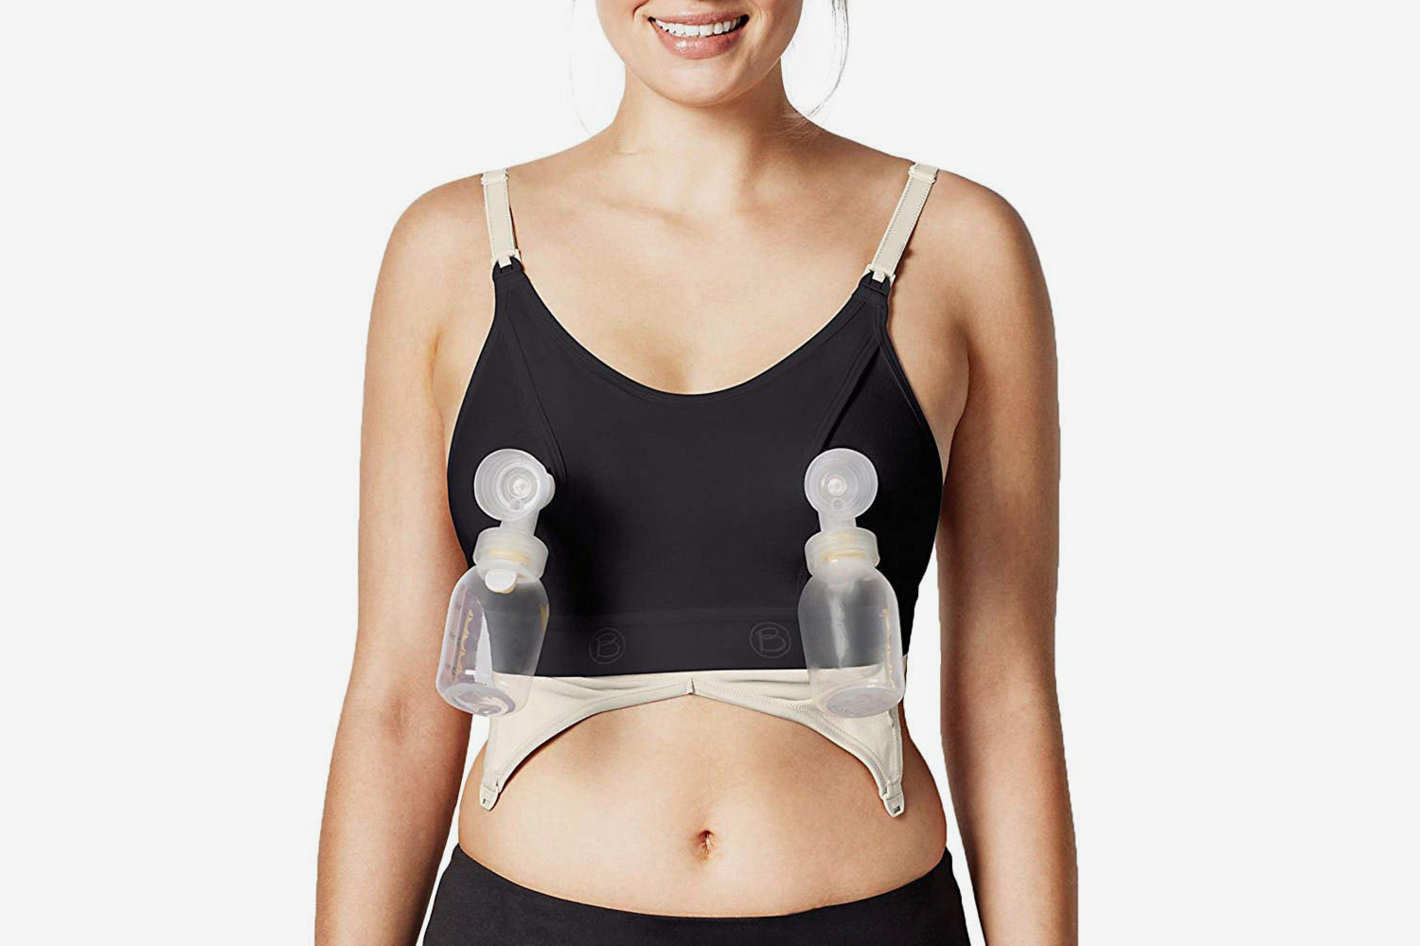 Bravado Designs Womens' Clip and Pump Hands-free Nursing Bra Accessory